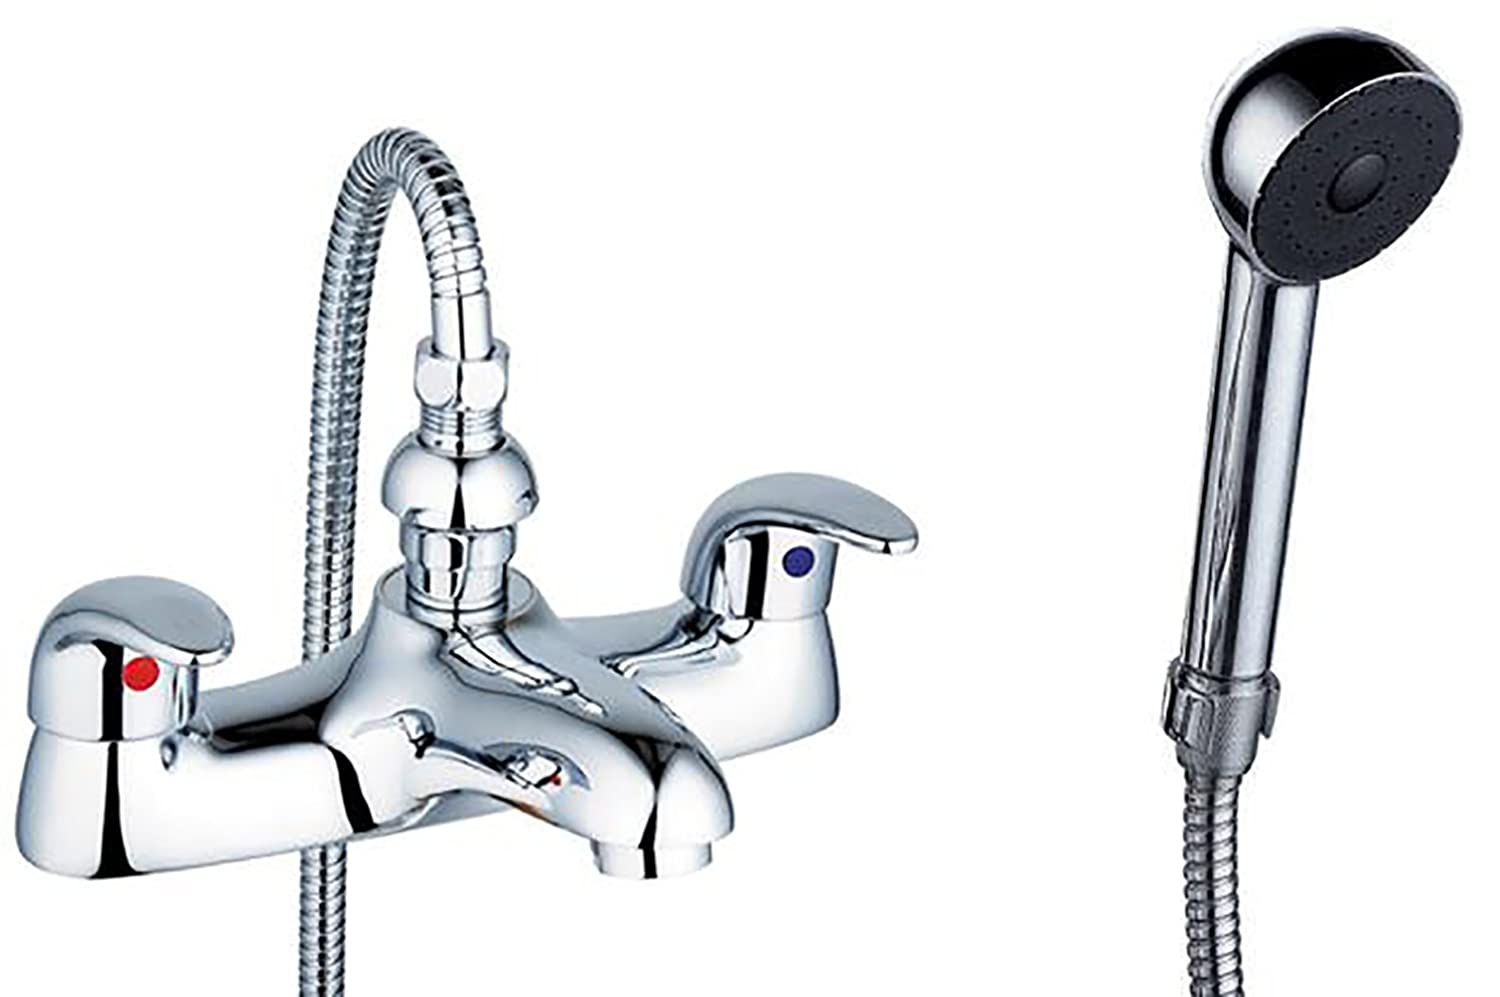 GrandTapz(TM) Bath Mixer Tap and Shower 1809: Amazon.co.uk: DIY & Tools